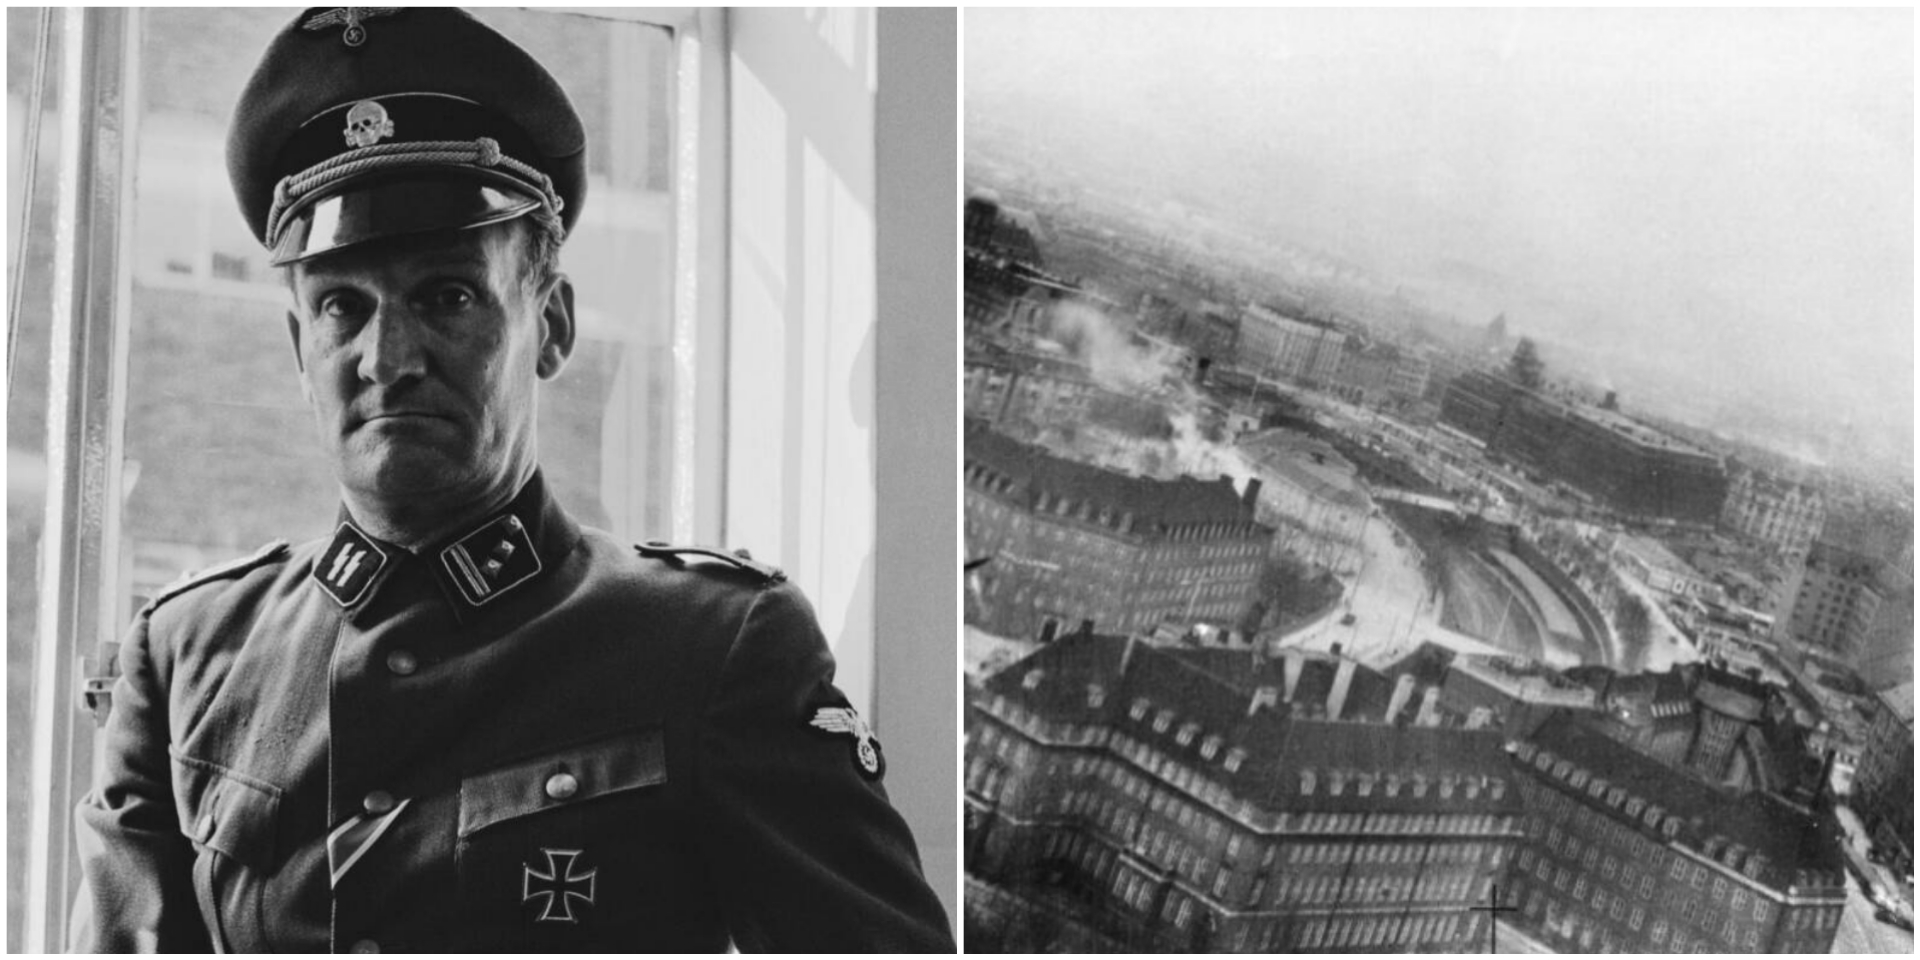 The Unbelievable True Story Of Eddie Chapman, The British Criminal-Turned-Spy Who Fooled The Nazis